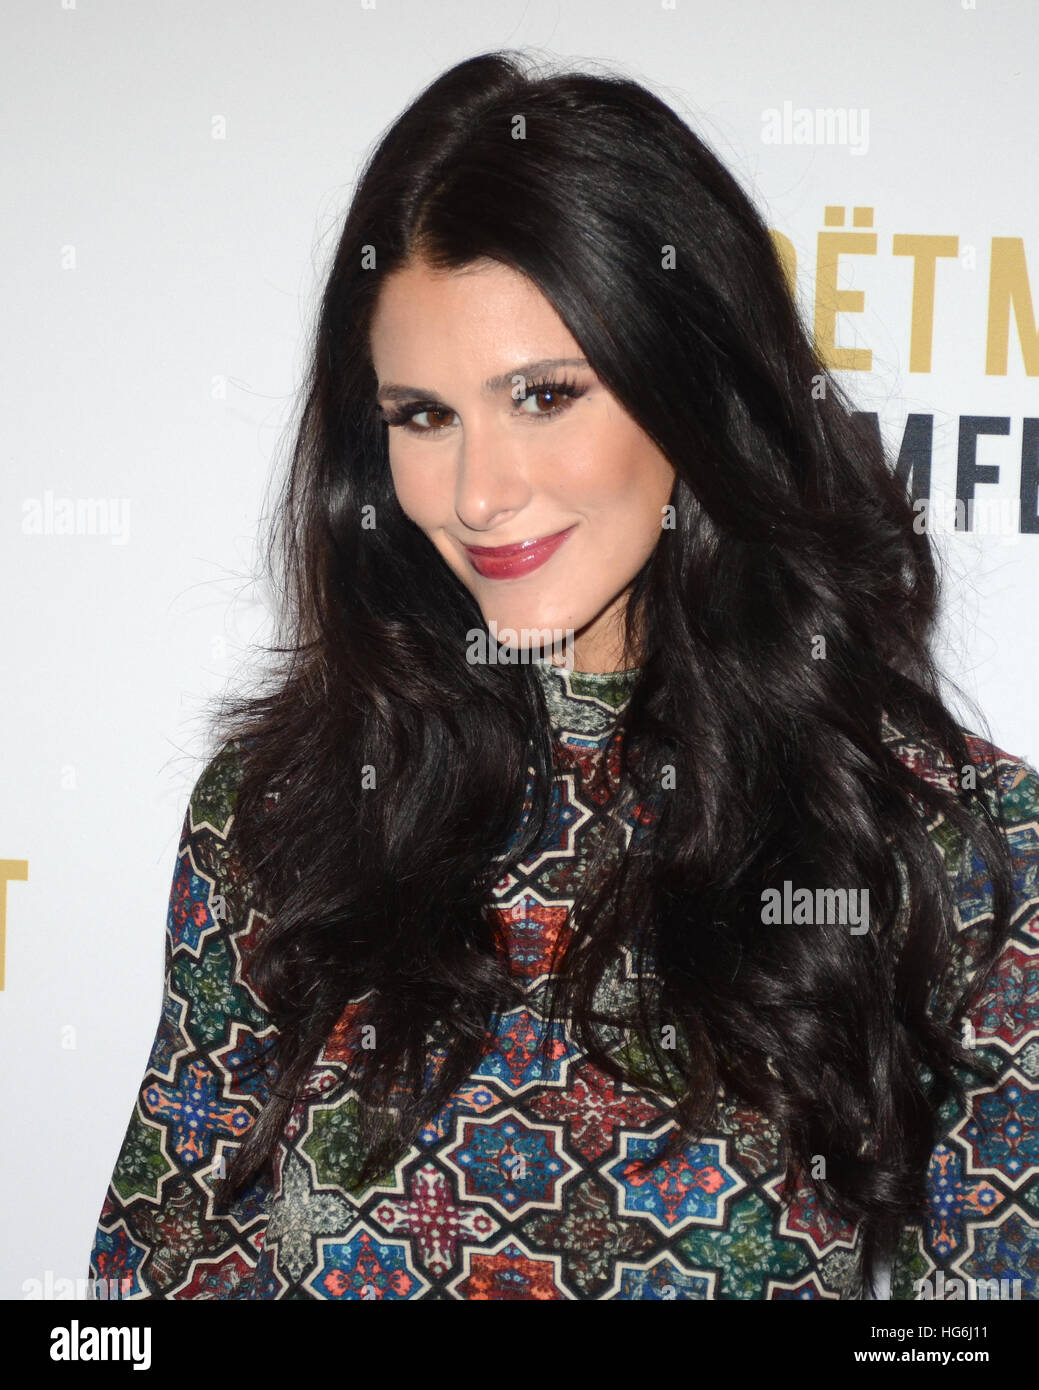 Young Brittany Furlan